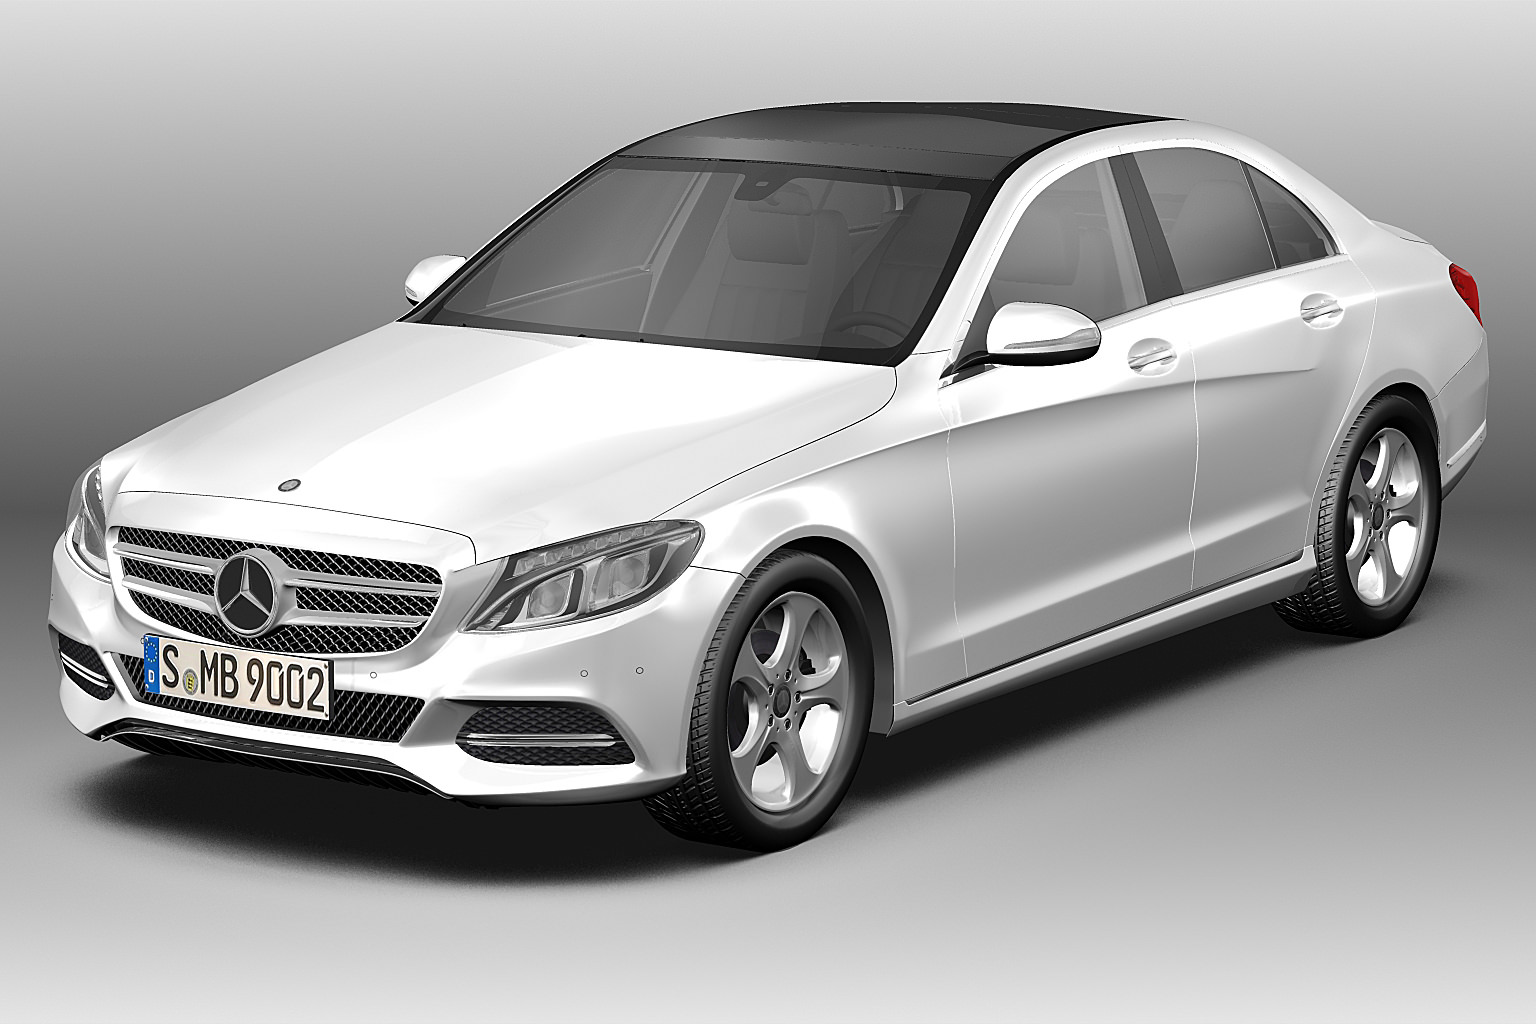 2014 mercedes benz c class 3d model max obj 3ds fbx c4d for 2014 mercedes benz a class